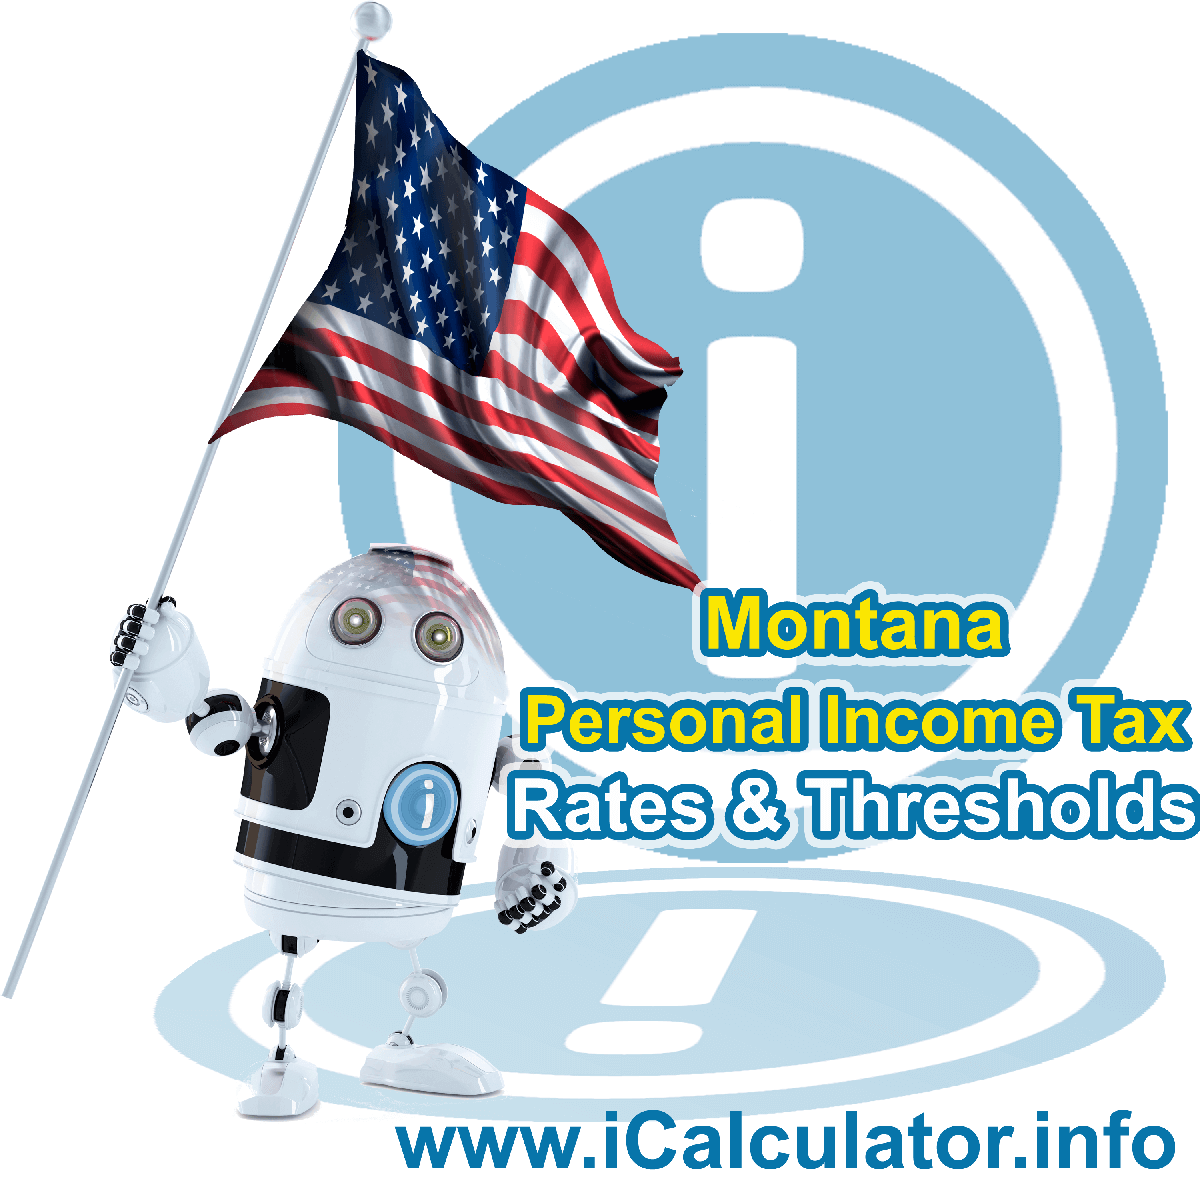 Montana State Tax Tables 2013. This image displays details of the Montana State Tax Tables for the 2013 tax return year which is provided in support of the 2013 US Tax Calculator